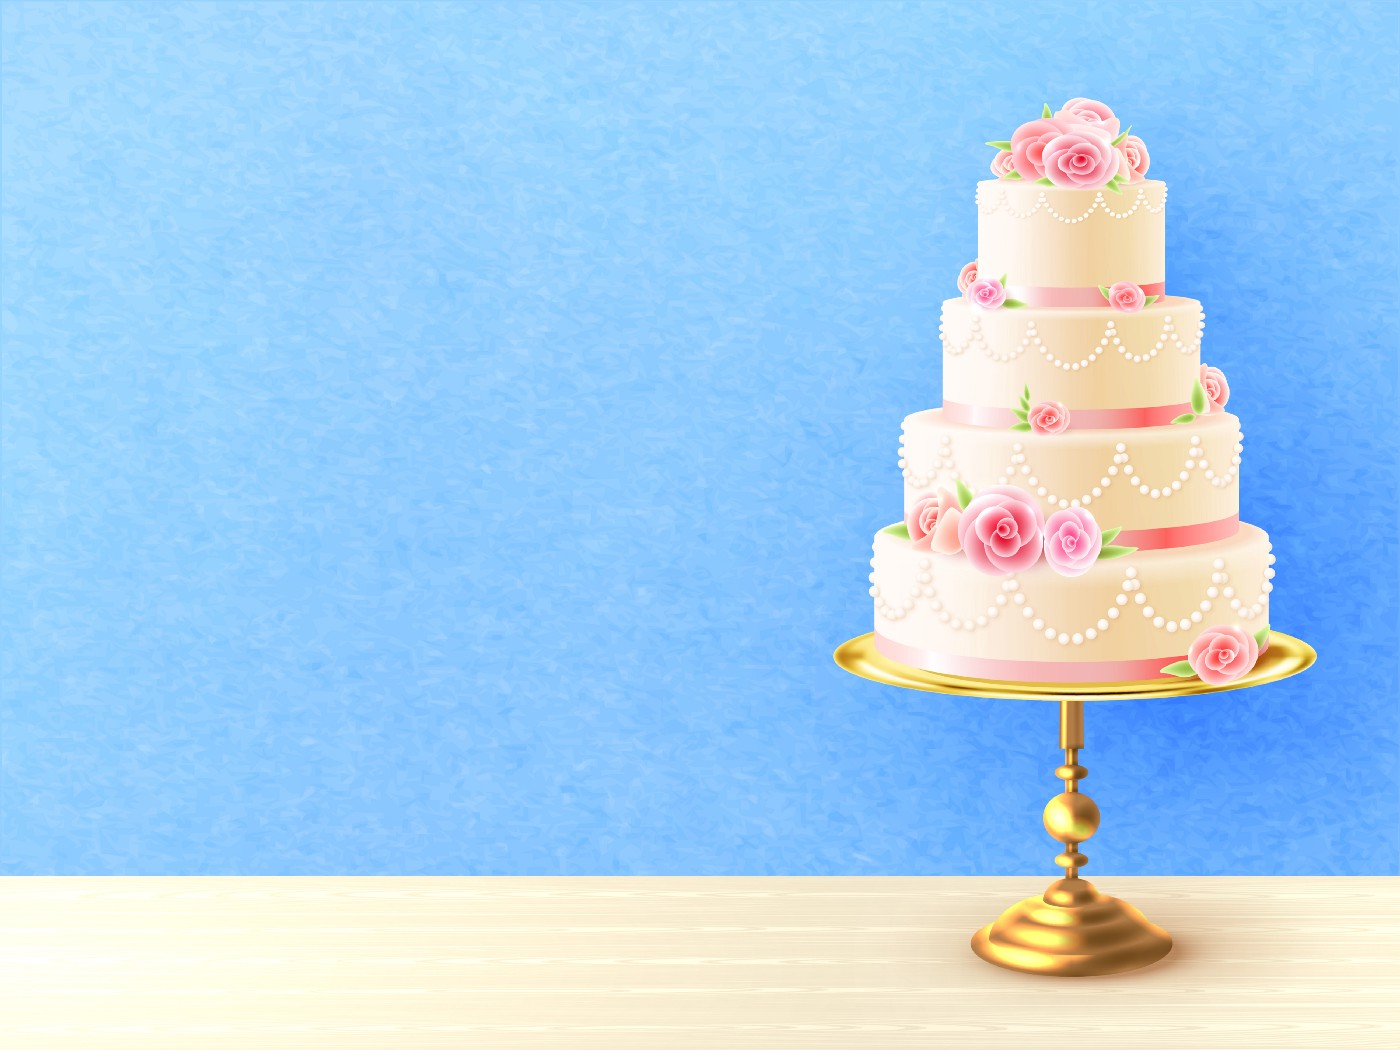 A white tiered cake with pink floral accents